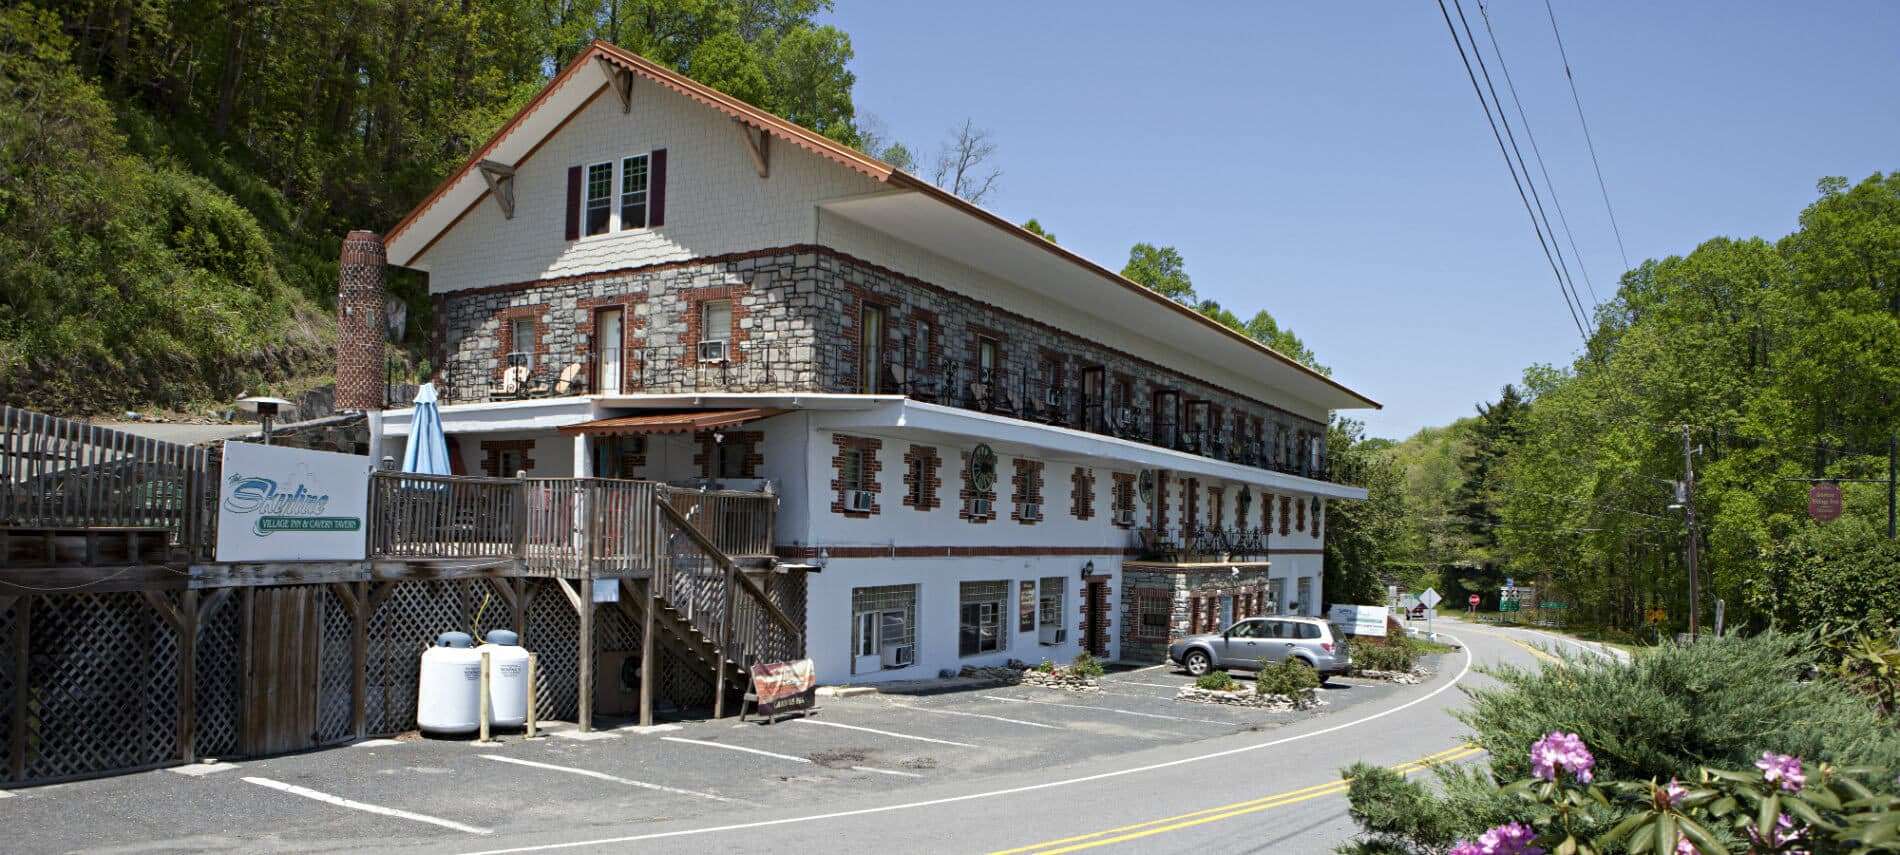 Exterior view of inn with four stories, front entry parking, side deck and surrounded by trees